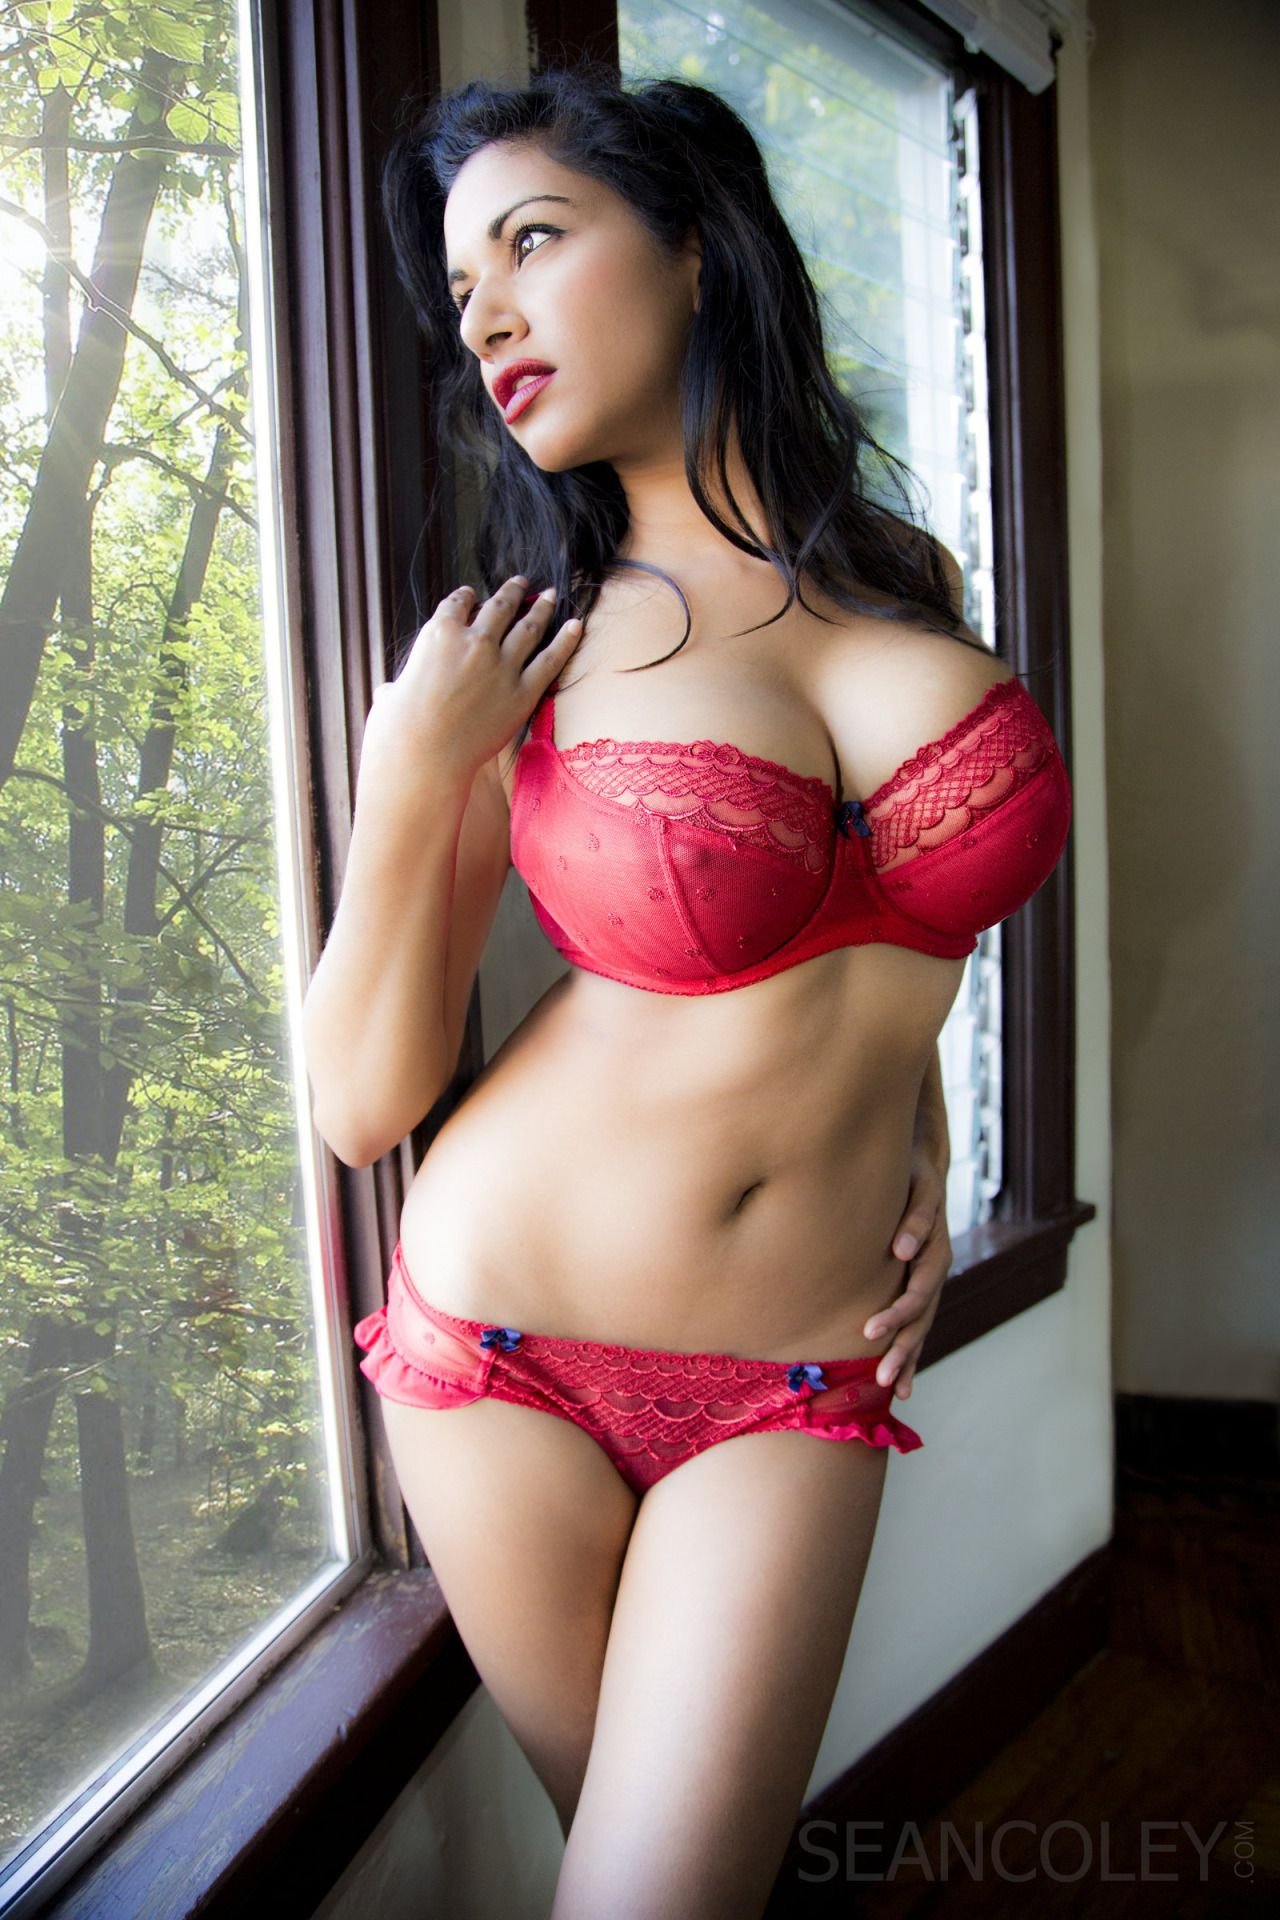 Tumblr Hot Indian Girls Classy http://spectacular-view.tumblr | real beauty | pinterest